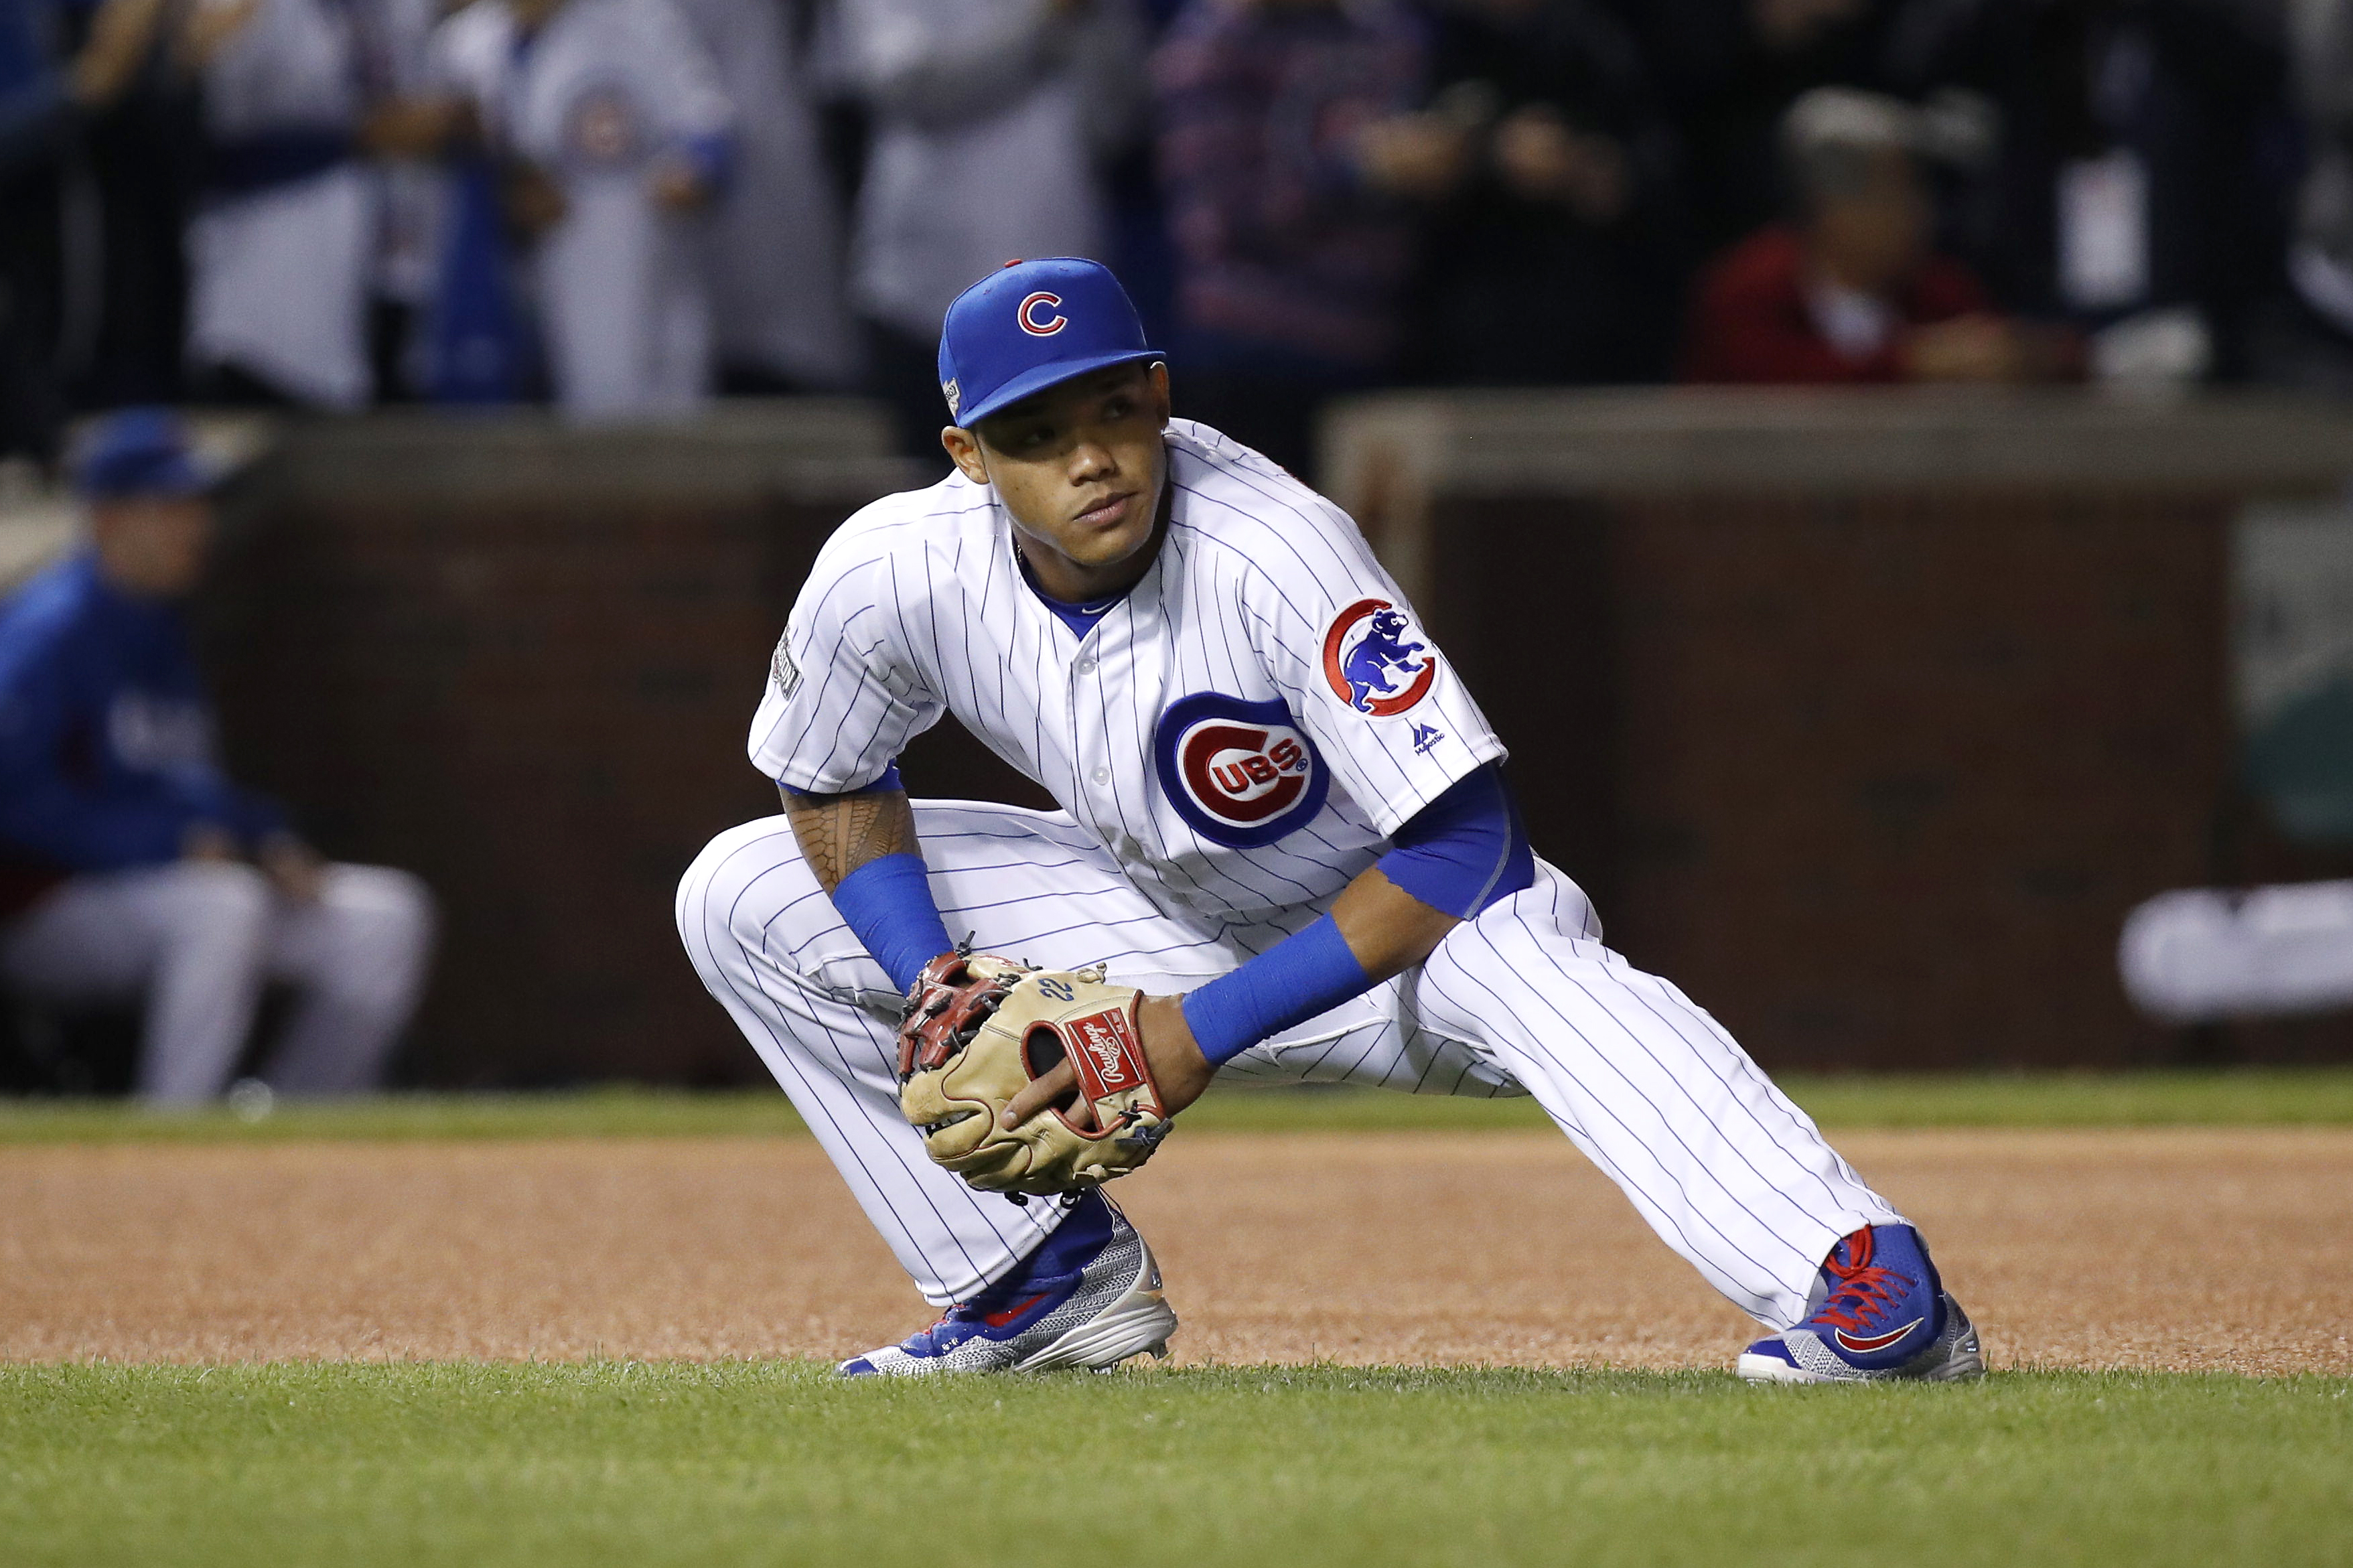 3513x2341 - Addison Russell Wallpapers 25